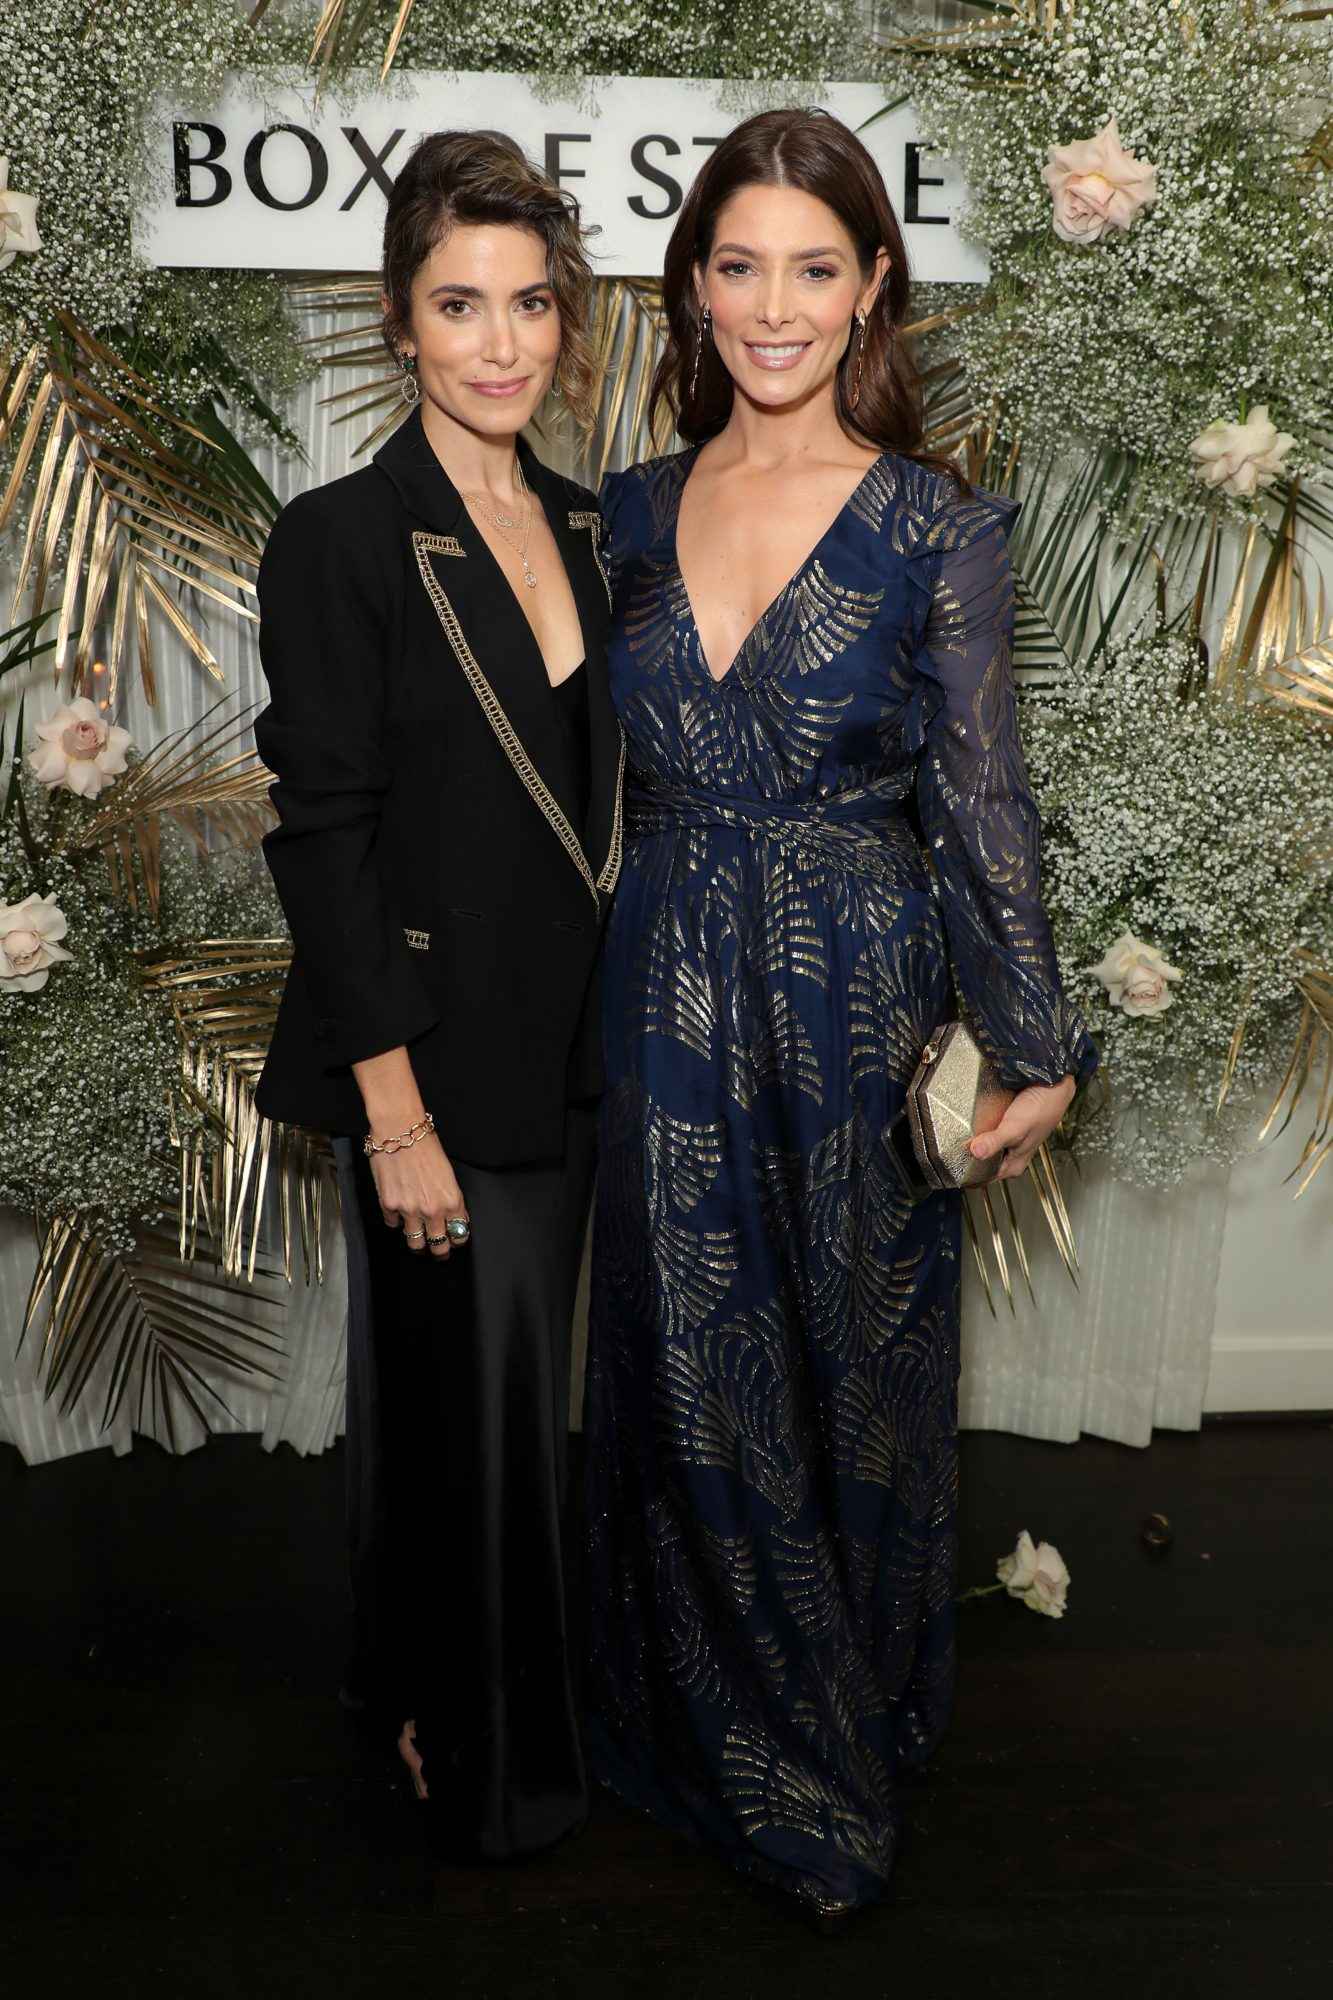 Rachel Zoe Collection and Box of Style Spring Event with Tanqueray, Los Angeles, USA - 11 Mar 2020